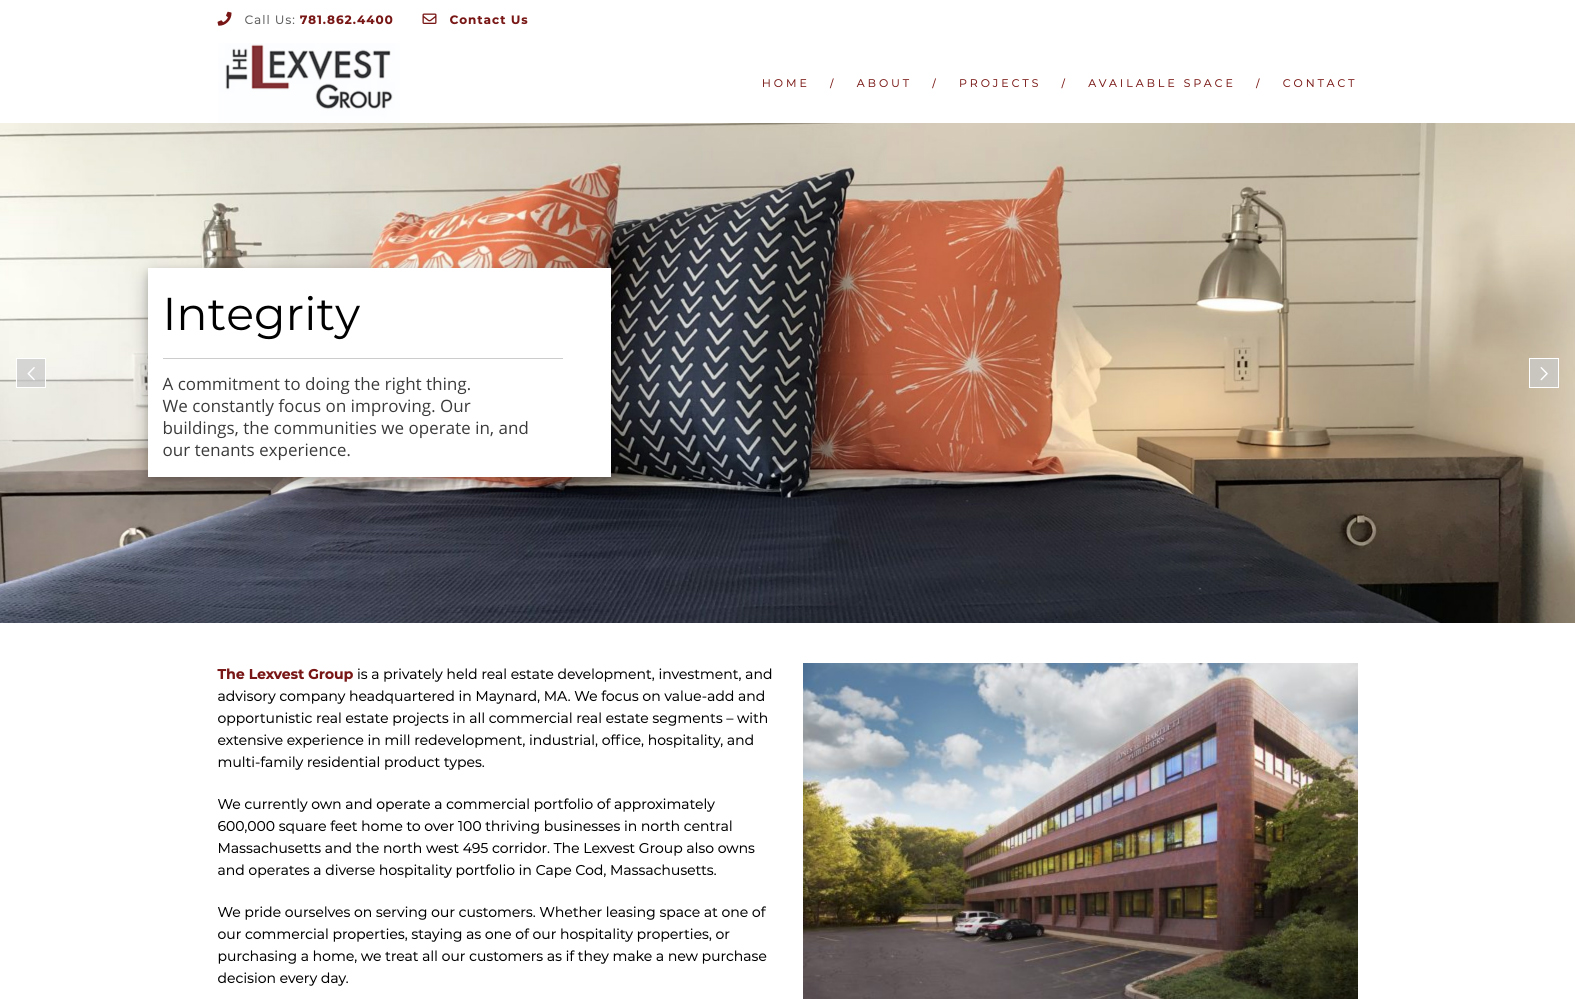 Website design for The Lexvest Group. Designed by Sitka Creations.